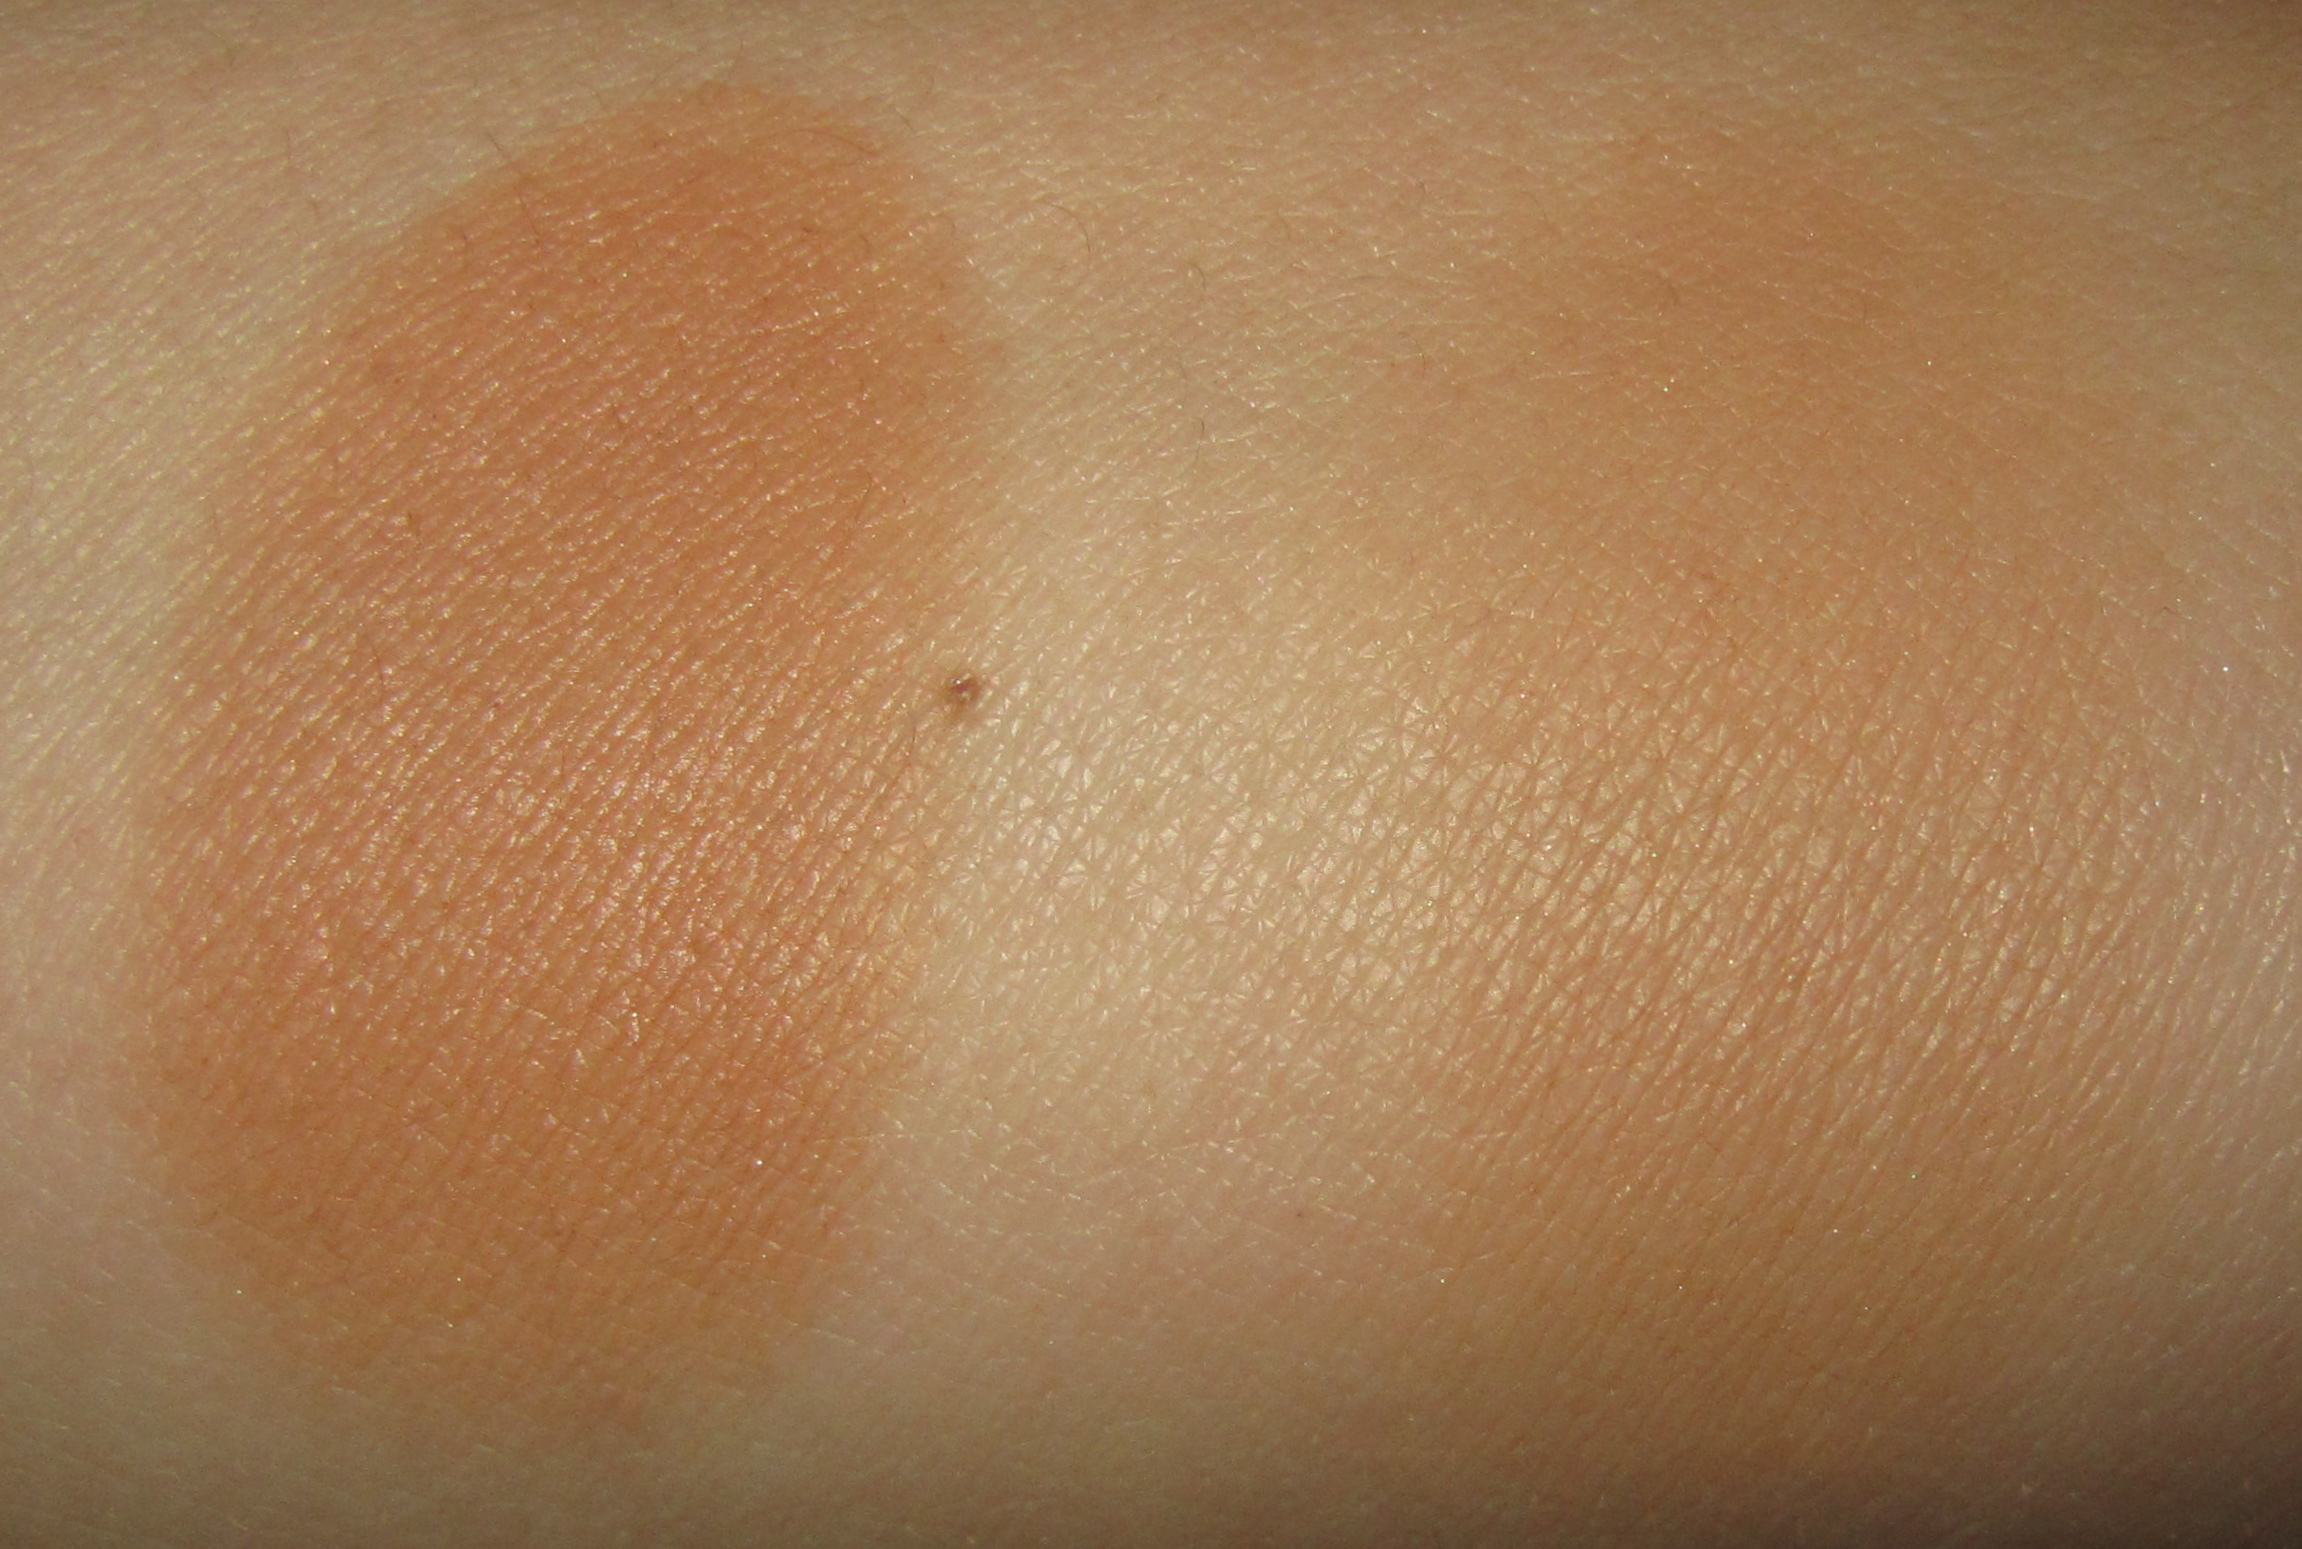 Soleil Tan De Chanel Bronzing Makeup Base by Chanel #18